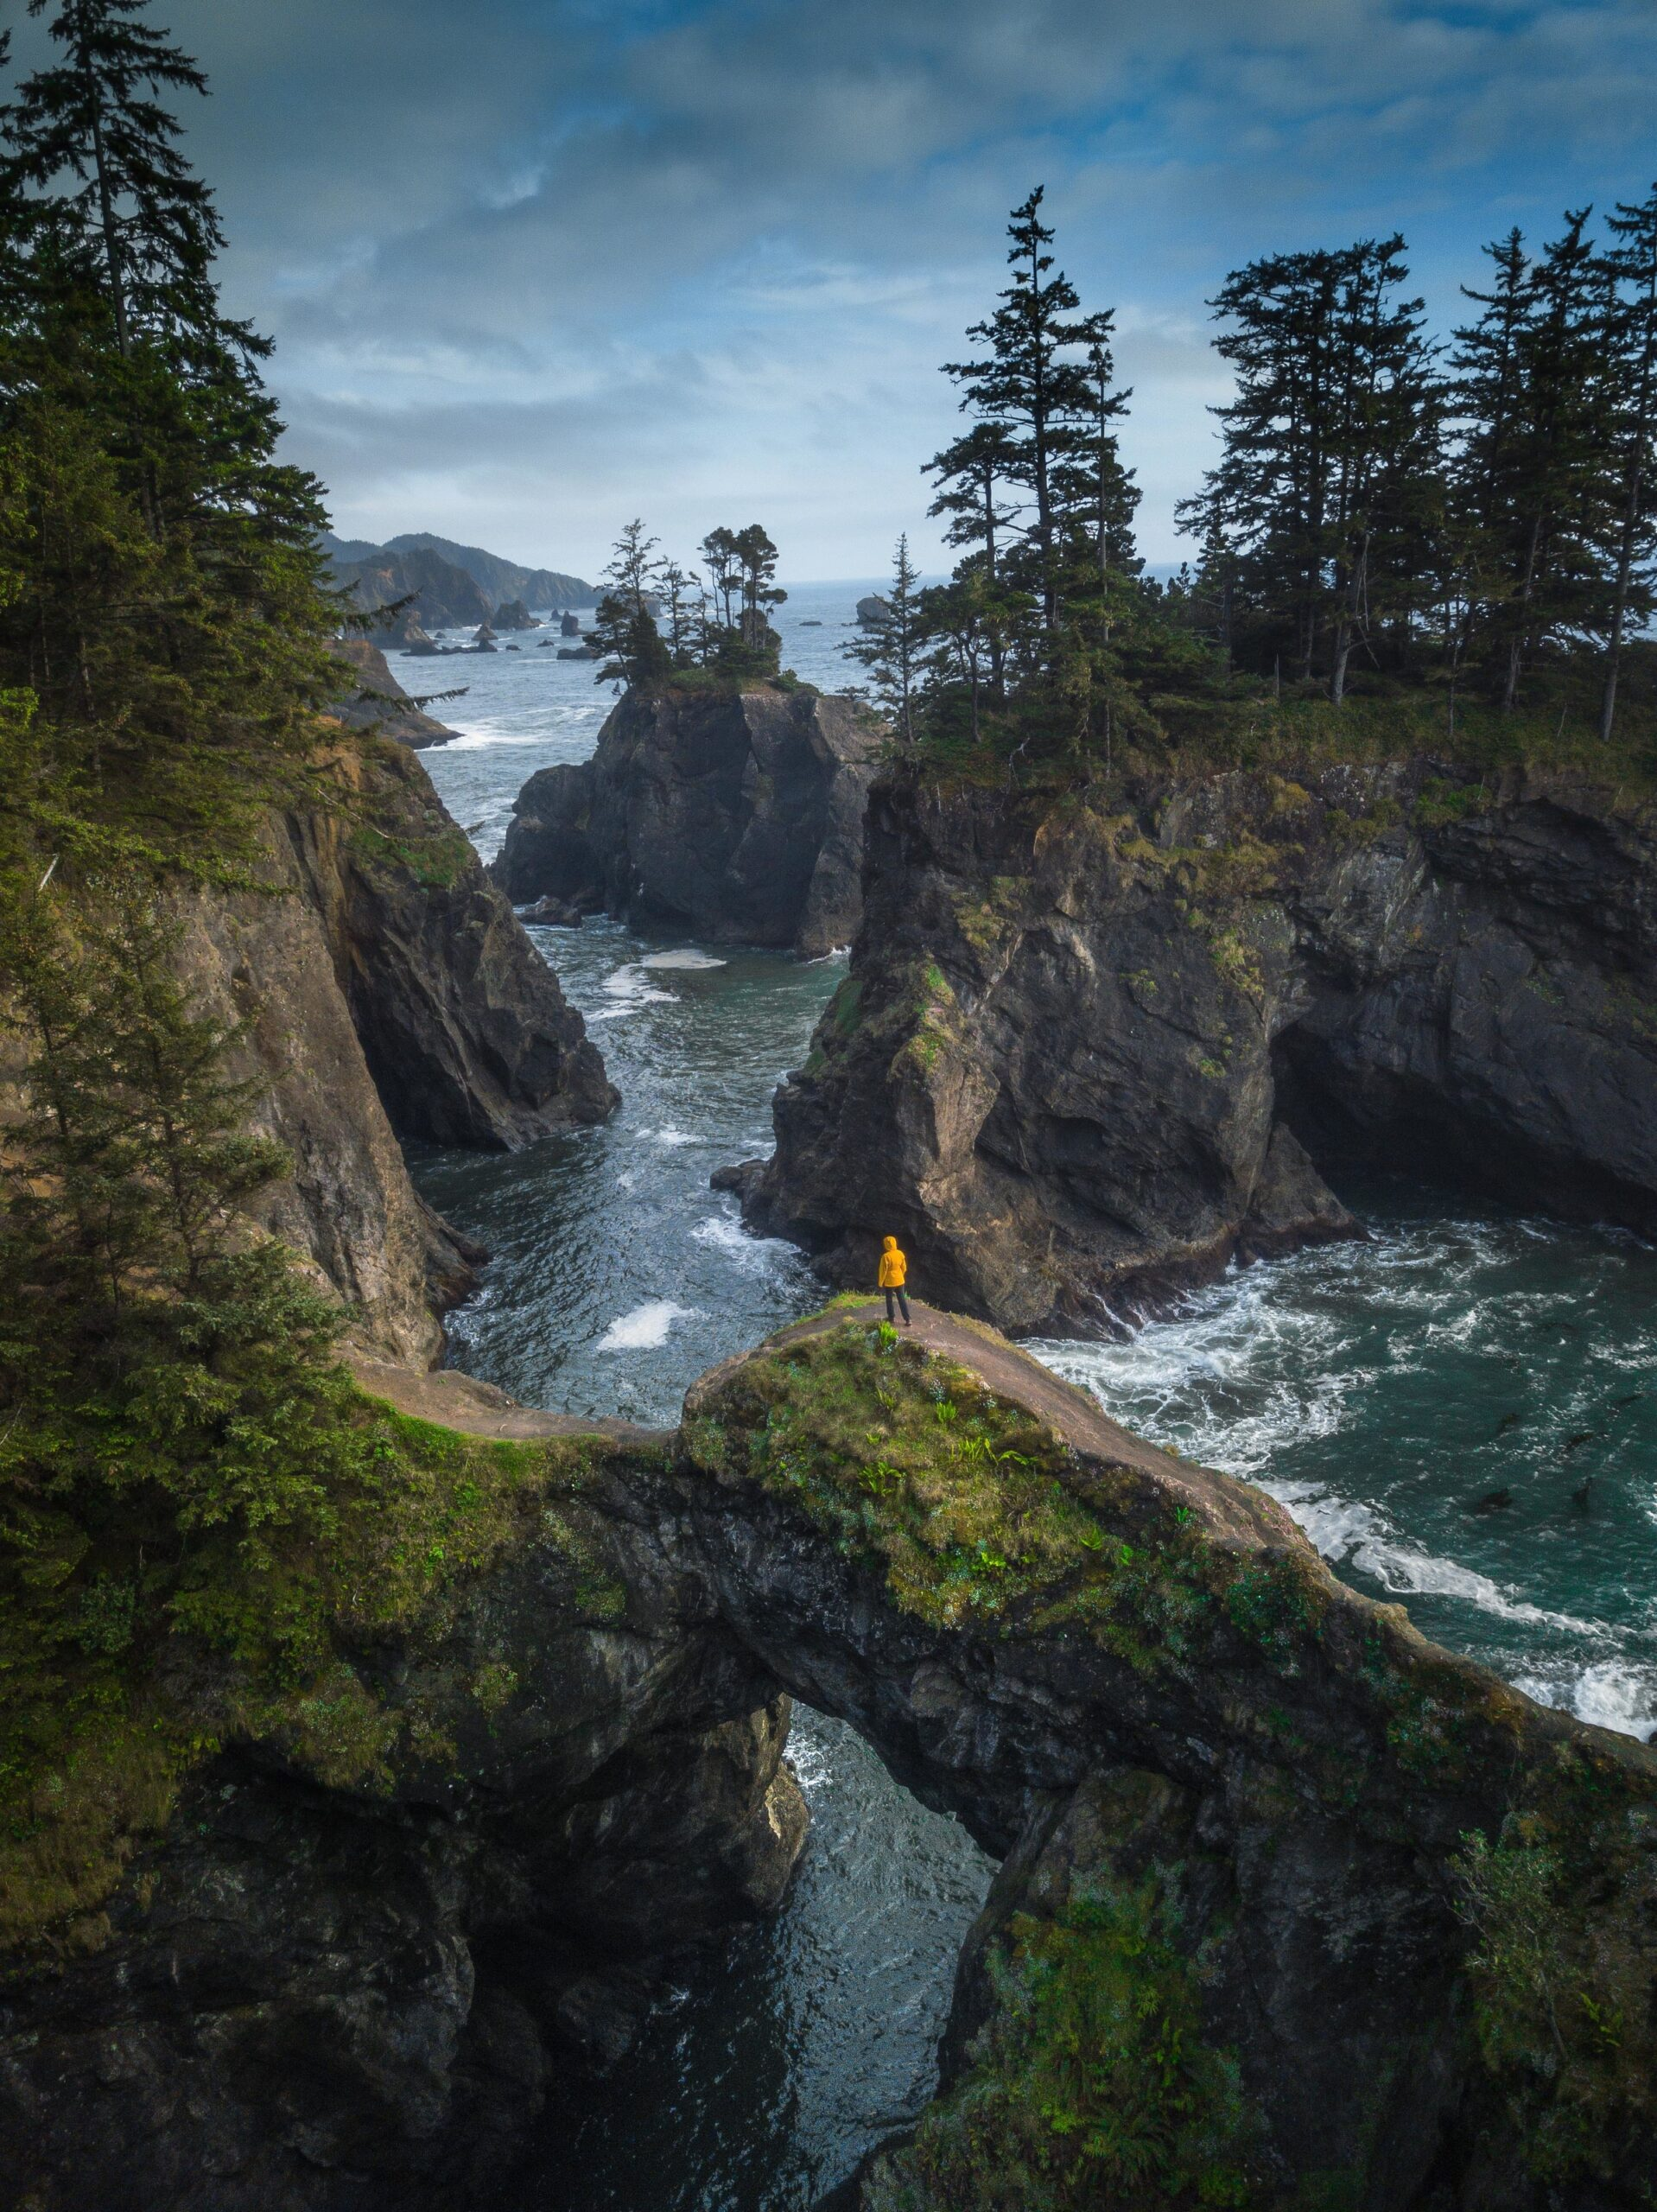 Photo of Victoria of Follow Me Away Travel in a yellow raincoat crossing one of the natural bridges of the Samuel H. Boardman Scenic Corridor.